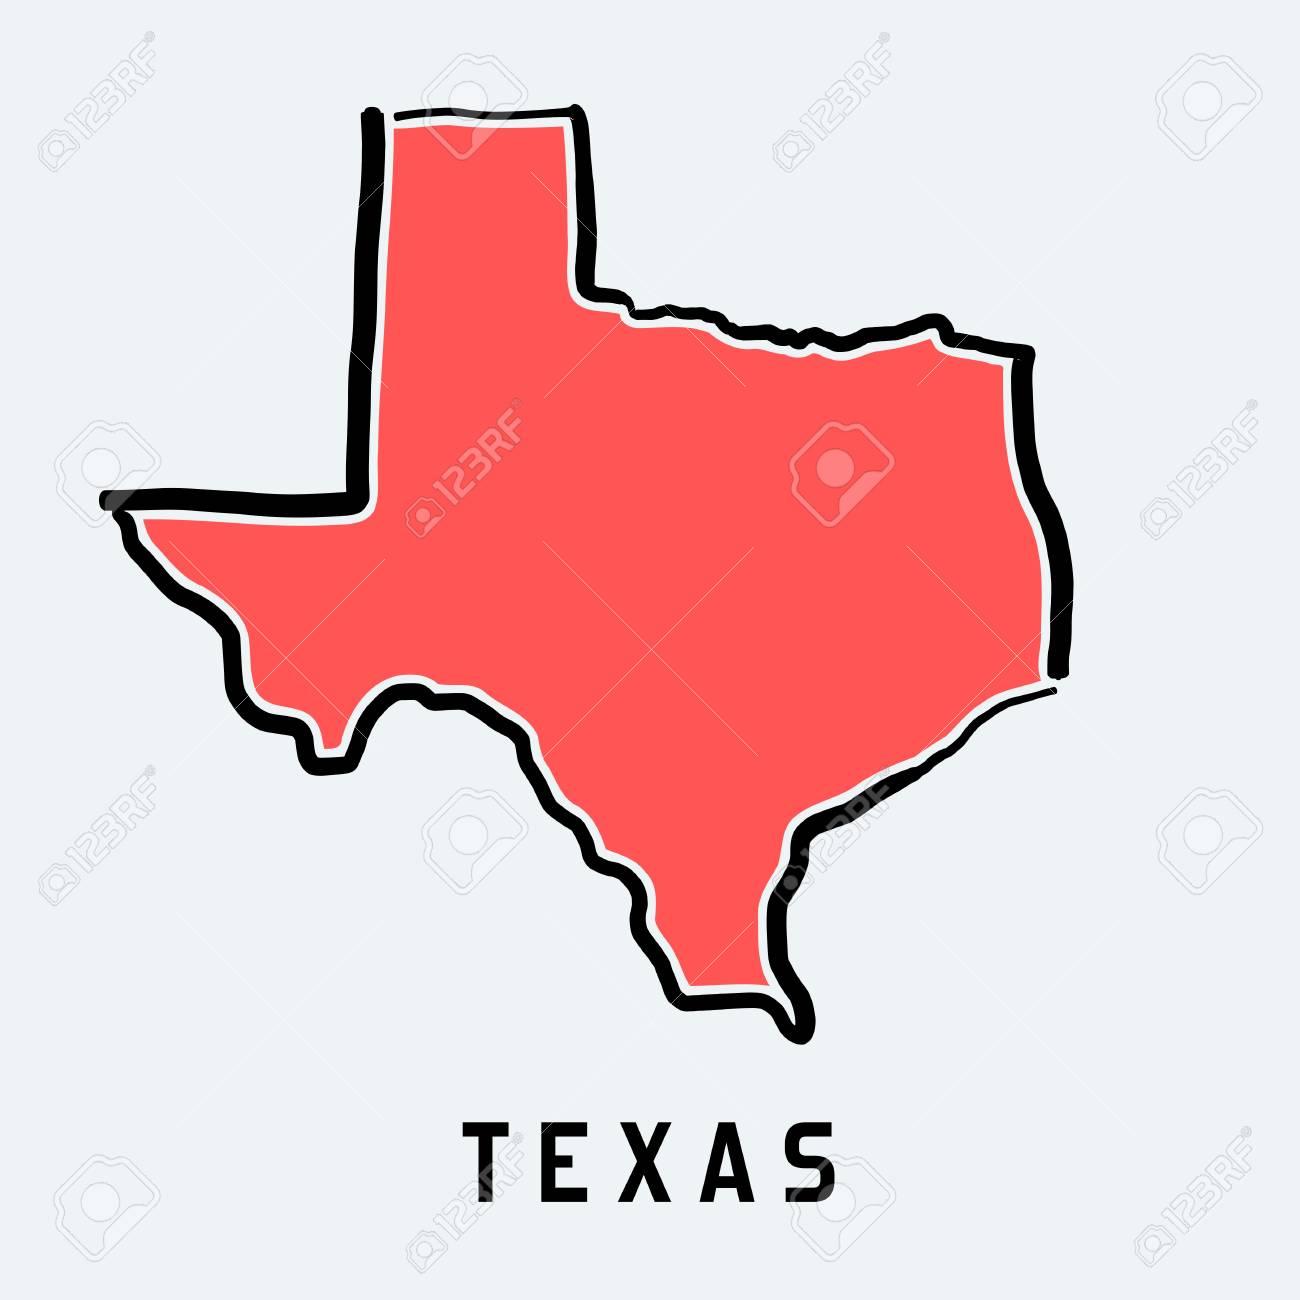 State Of Texas Map Outline.Texas Map Outline Smooth Simplified Us State Shape Map Vector